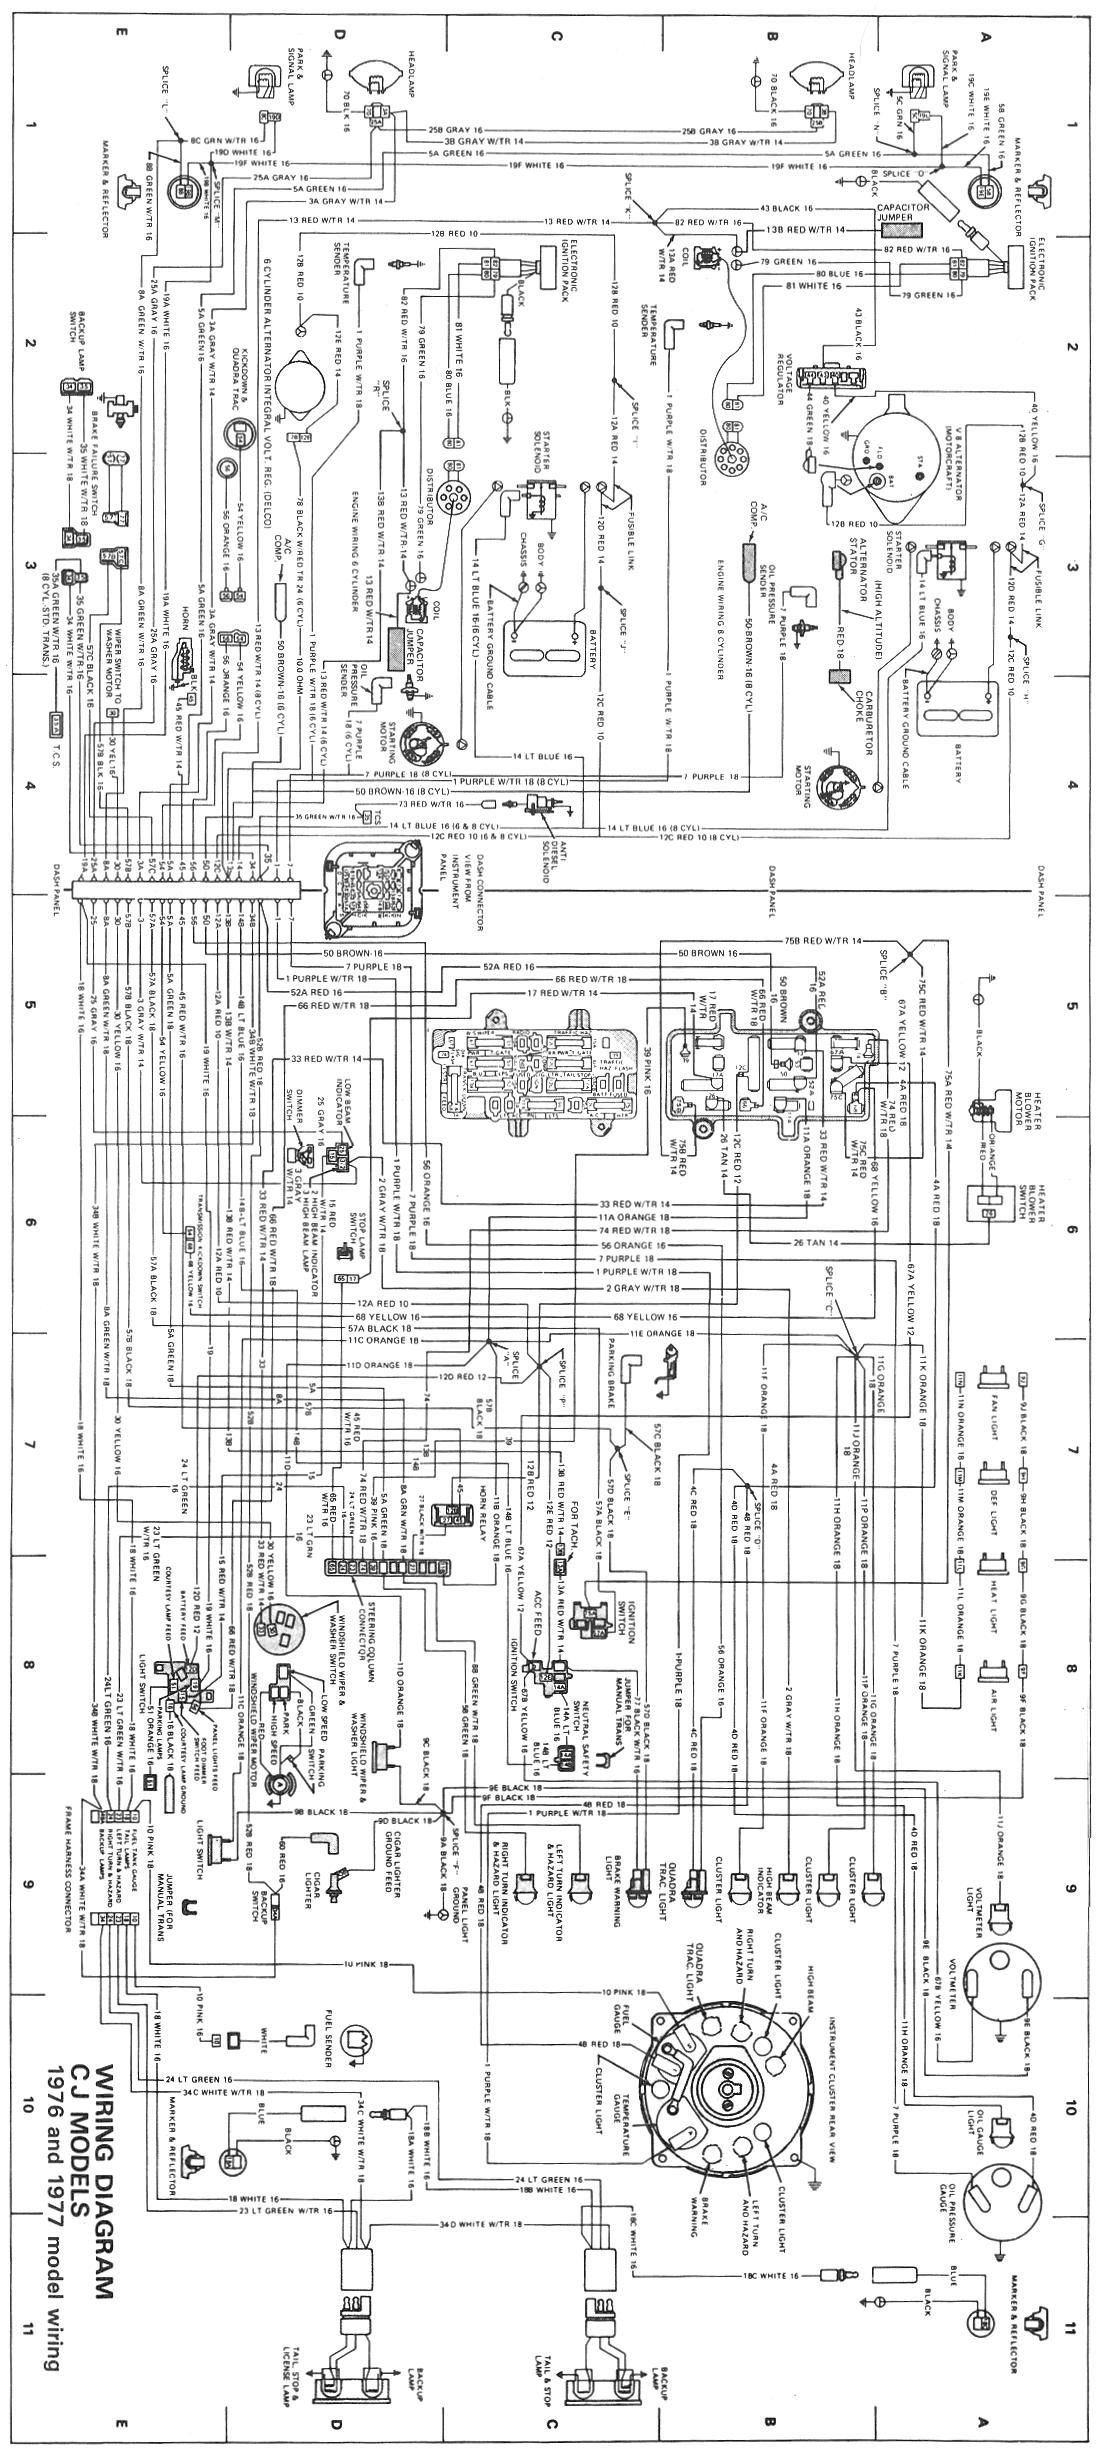 jeep wiring diagrams 1976 and 1977 cj jeep wiring pinterest rh pinterest com 1974 cj5 ignition switch wiring diagram 1974 cj5 ignition switch wiring diagram